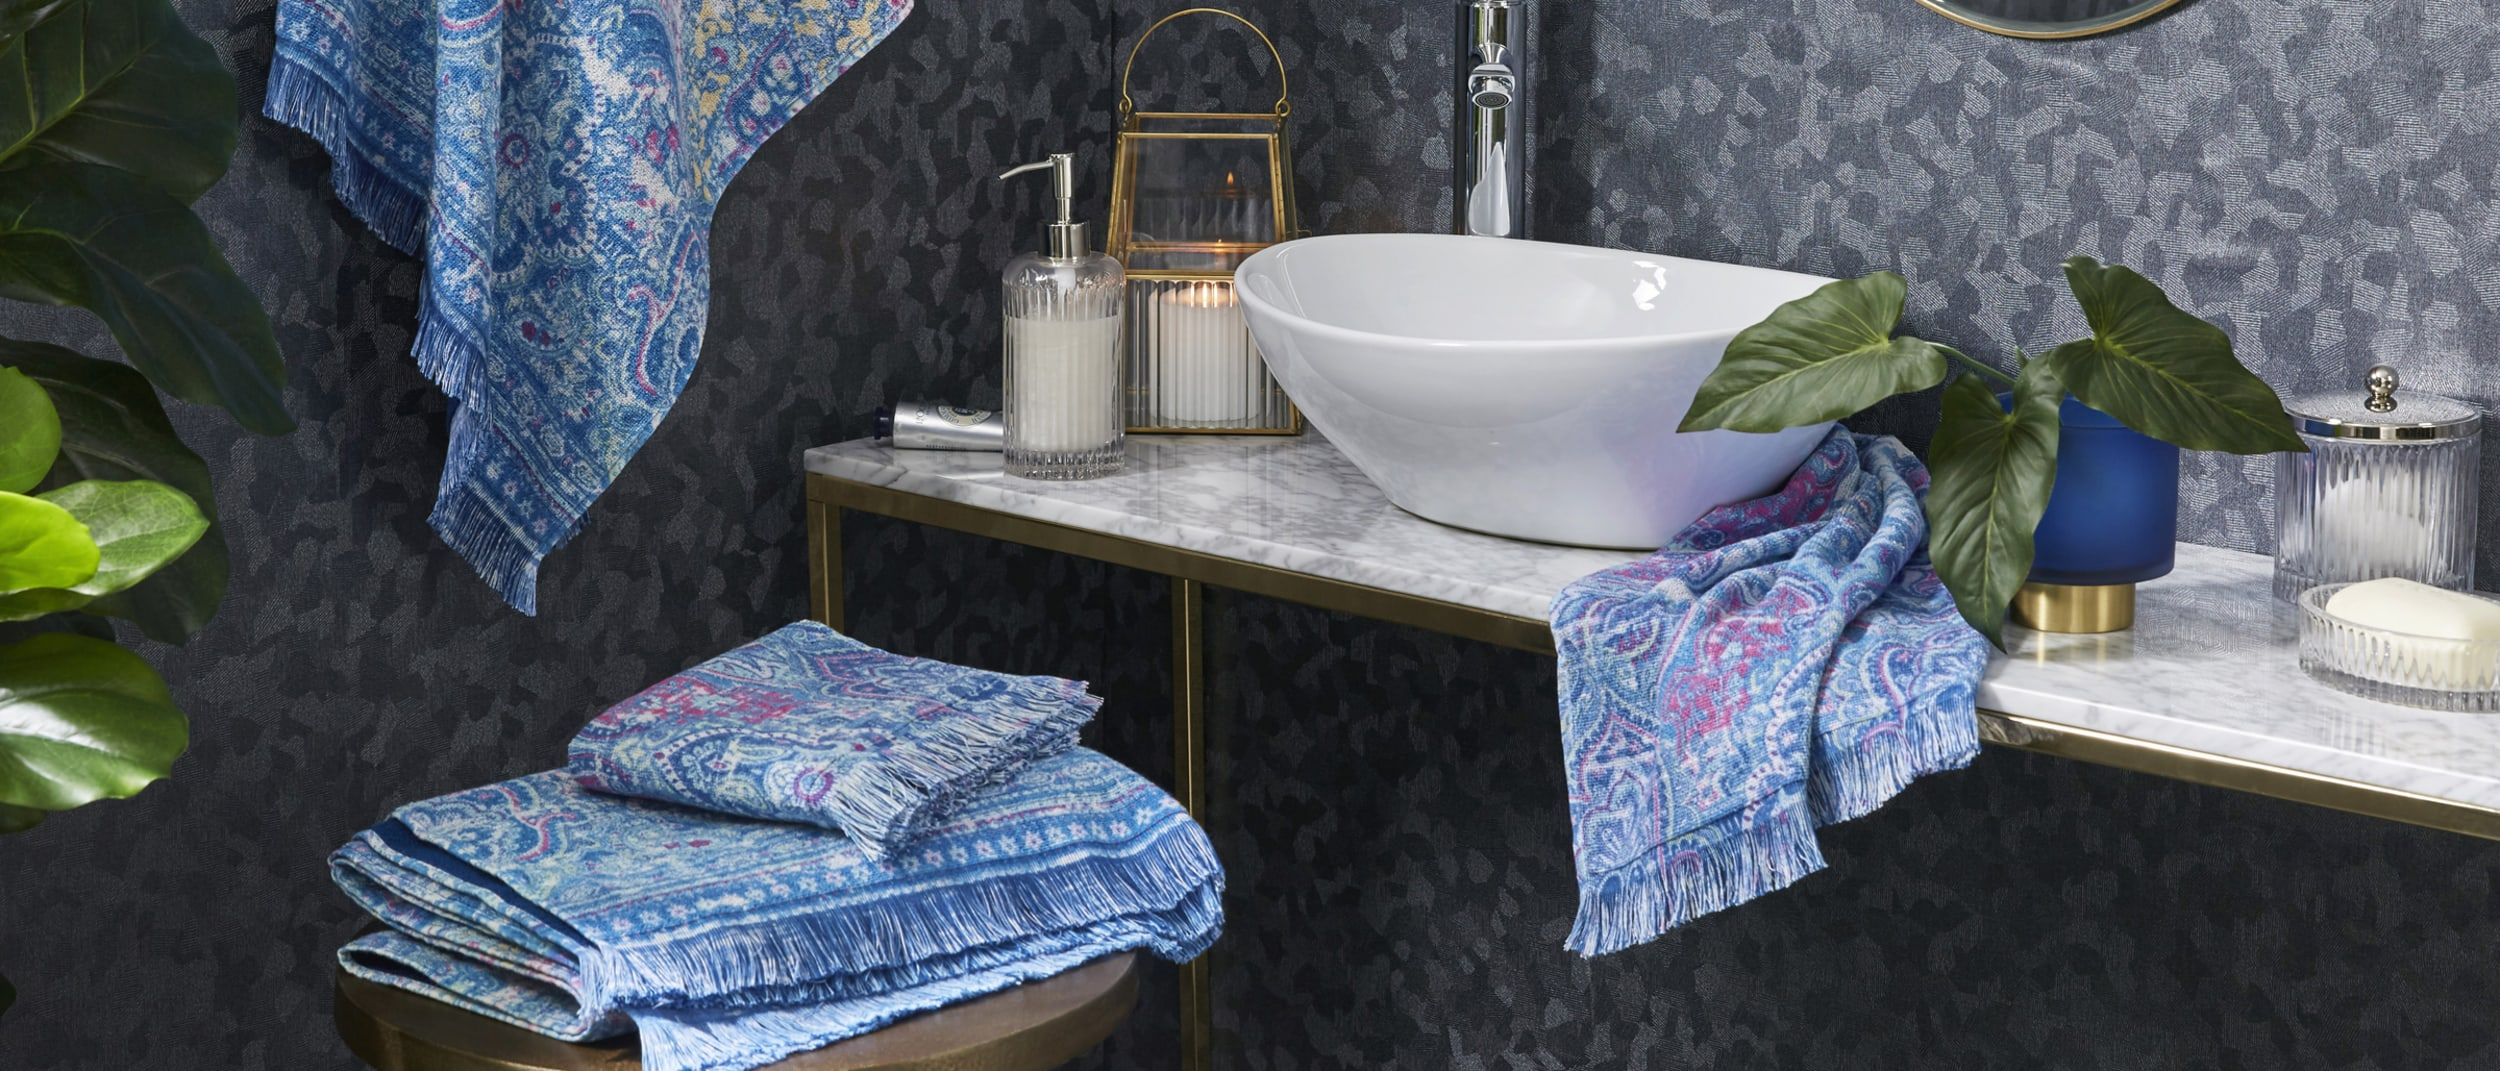 Bed Bath N' Table: Spring Collection